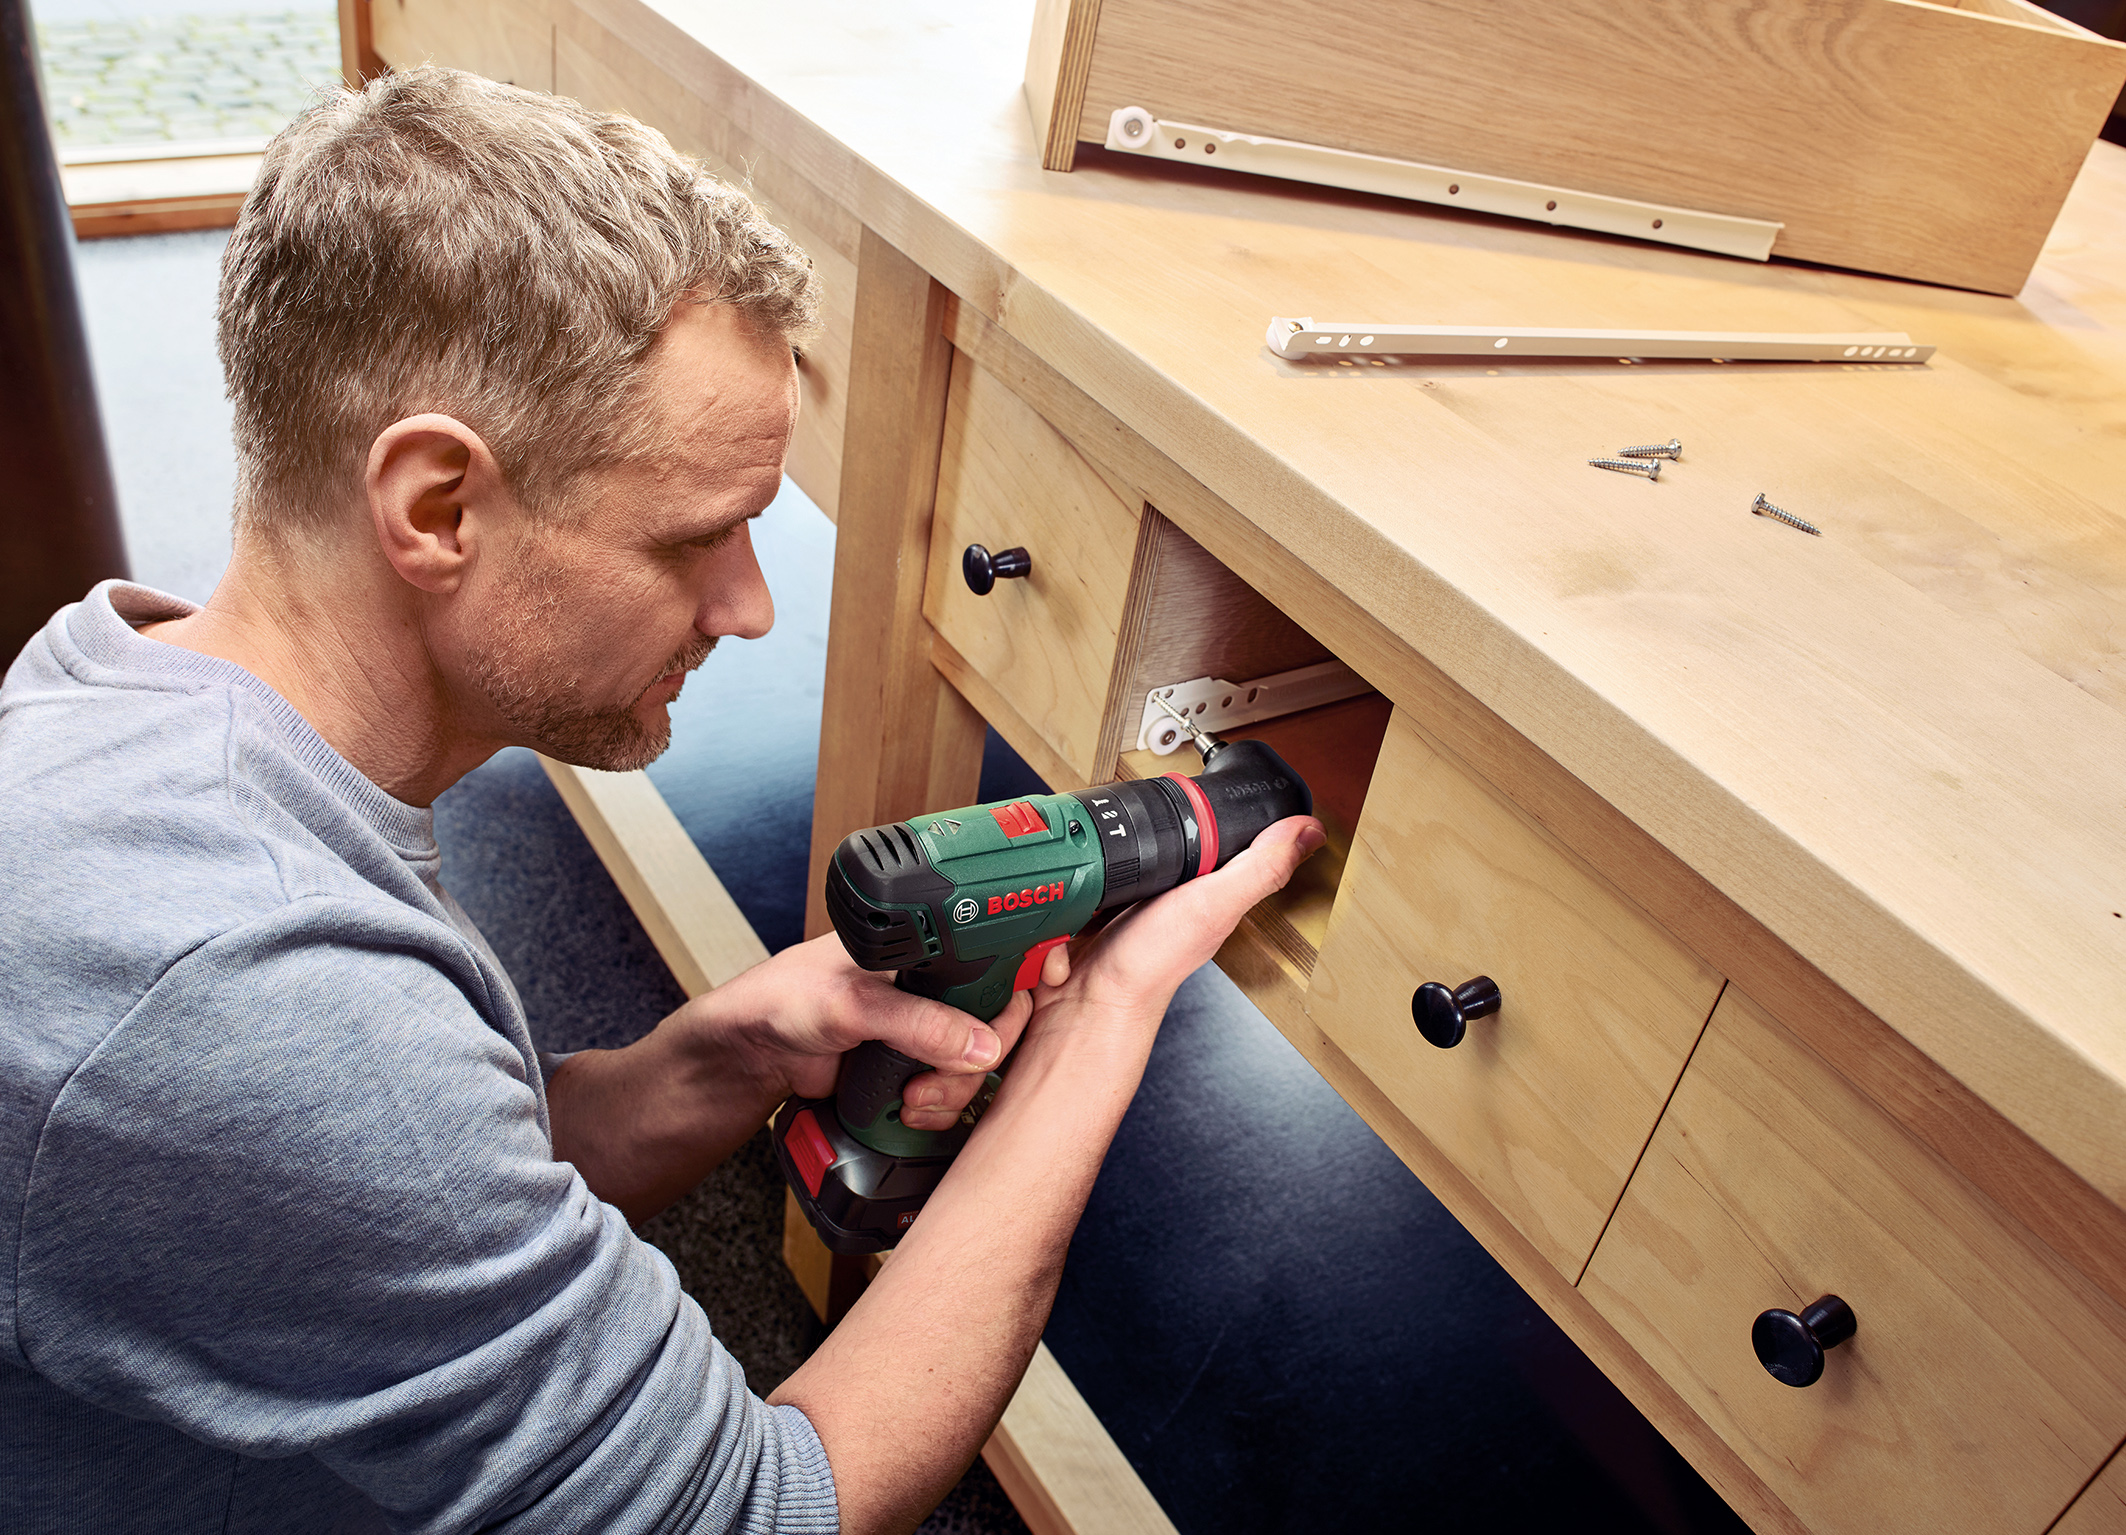 Cordless combi drill system for DIYers: Bosch AdvancedImpact 18 QuickSnap with angle screw adapter